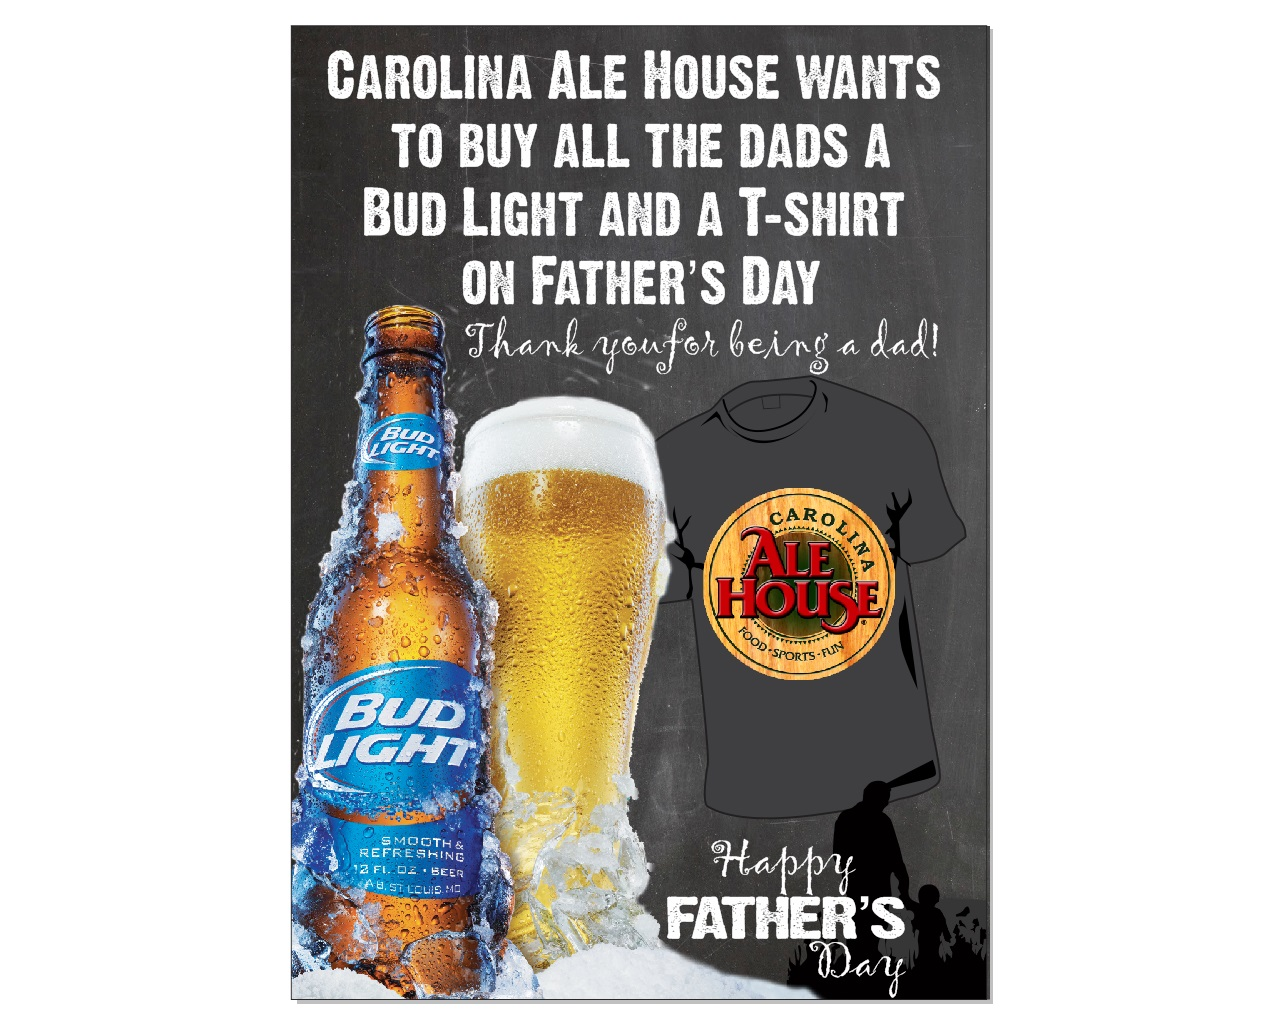 Carolina Ale House Wants To Make Sure You Feel Appreciated This Fatheru0027s  Day. Come In Tomorrow, June 21, For A Bud Light And A T Shirt On The  (Carolina Ale) ...